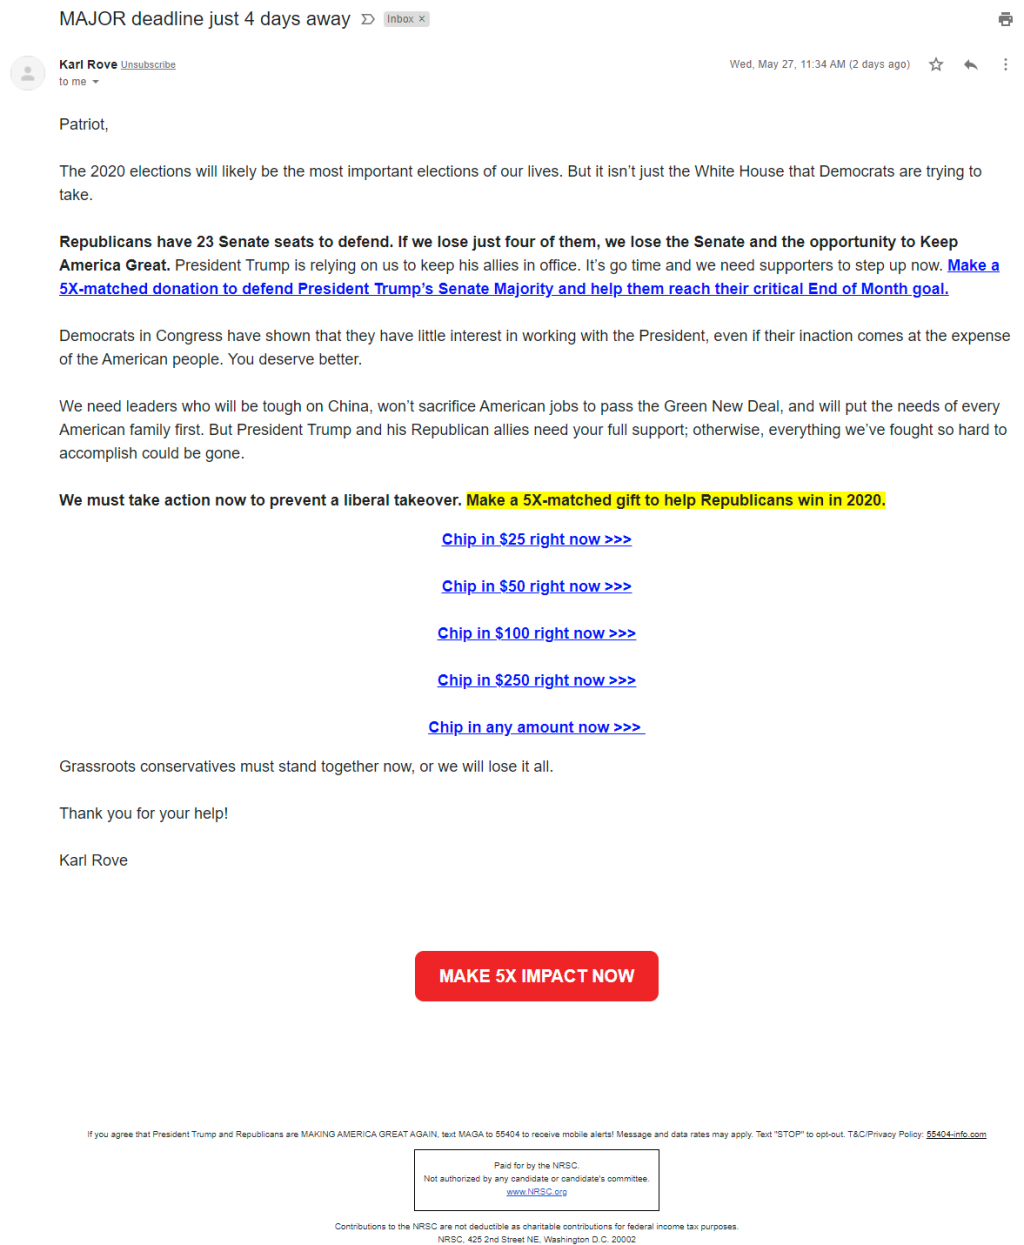 Karl Rove's email for the National Republican Senatorial Committee